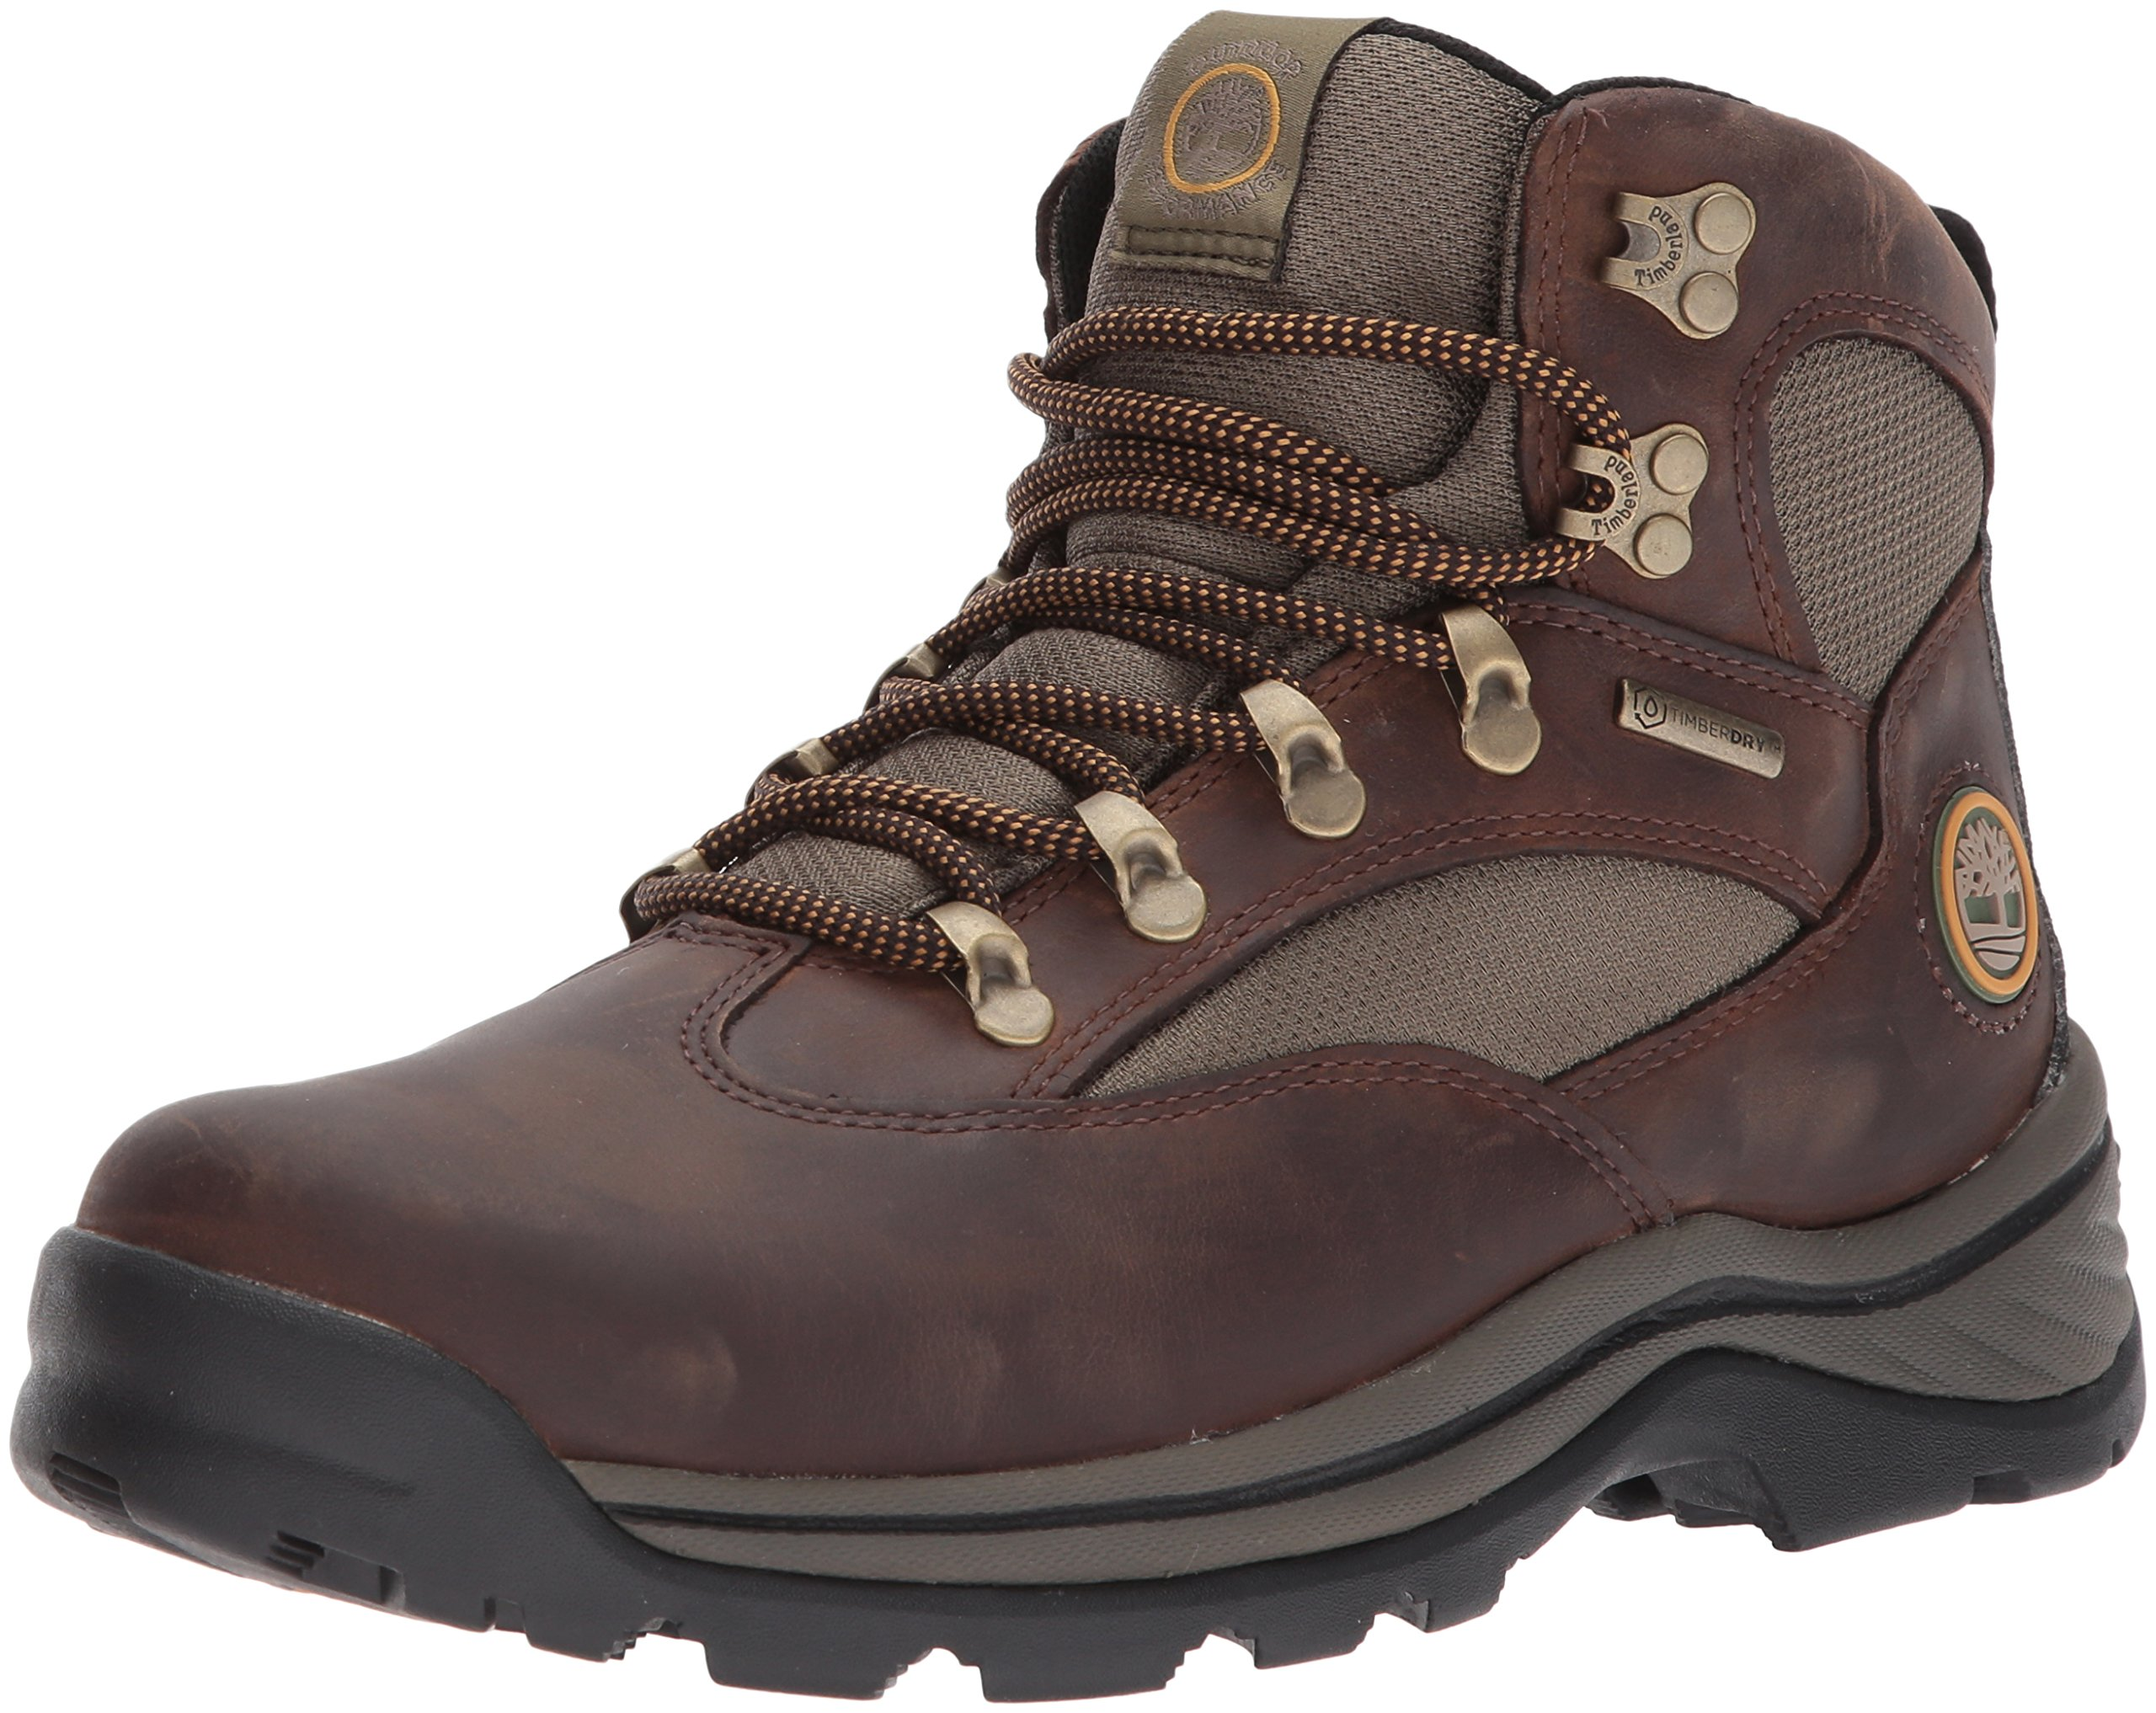 Timberland Men's Chocorua Trail Mid Waterproof Boot,Brown/Green,13 W